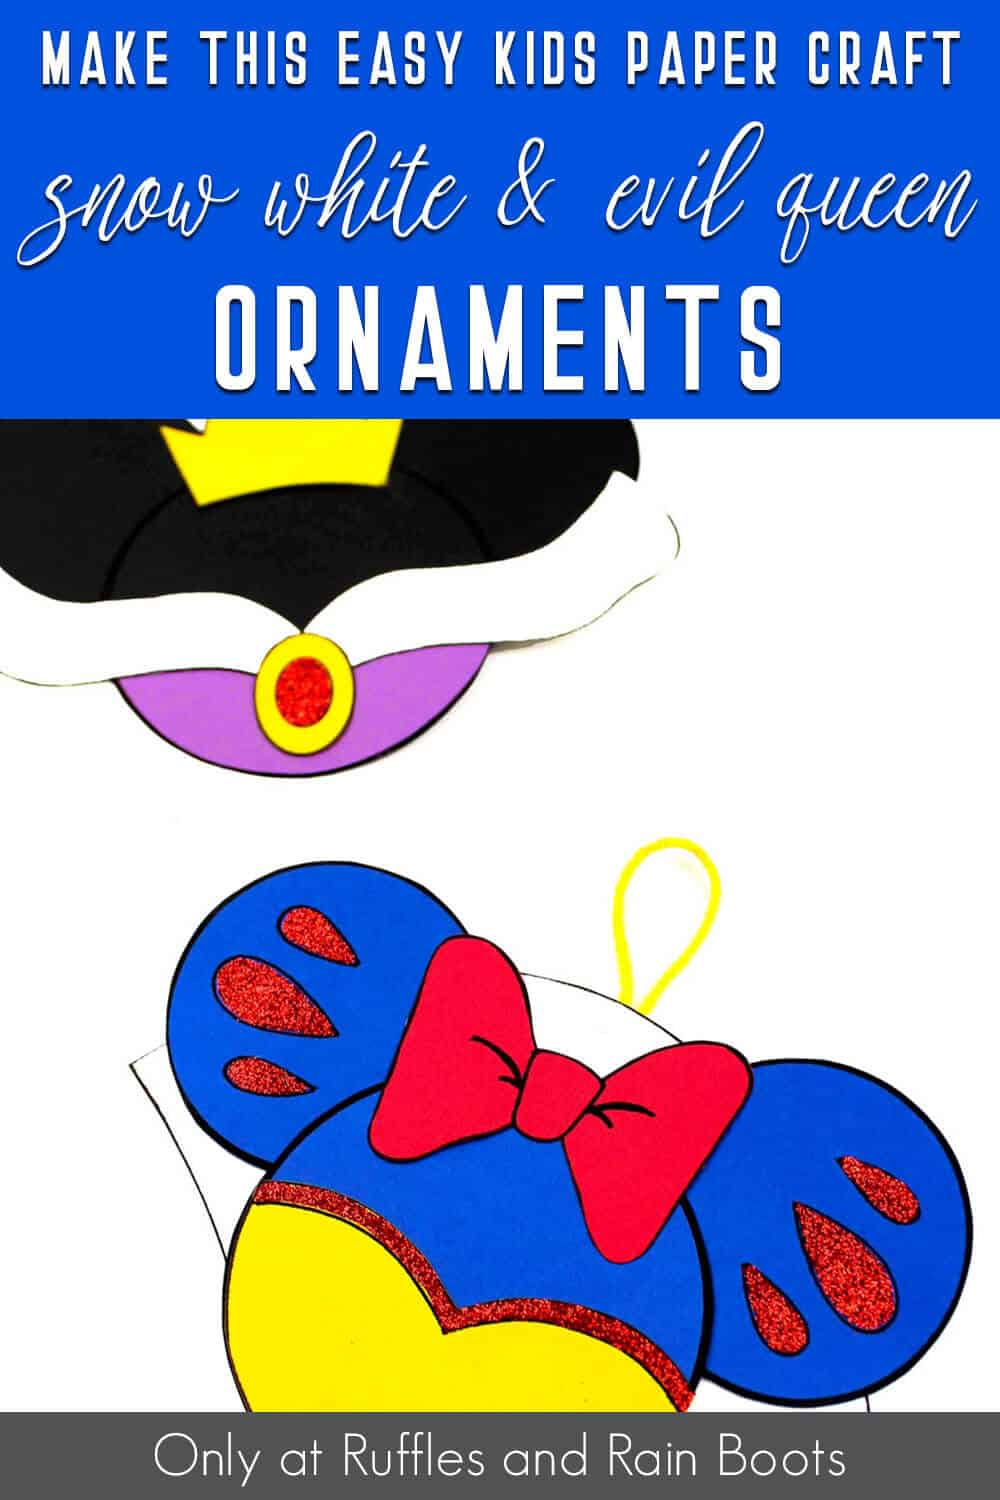 snow white minnie ornaments with text which reads make this easy kids paper craft snow white & evil queen ornaments